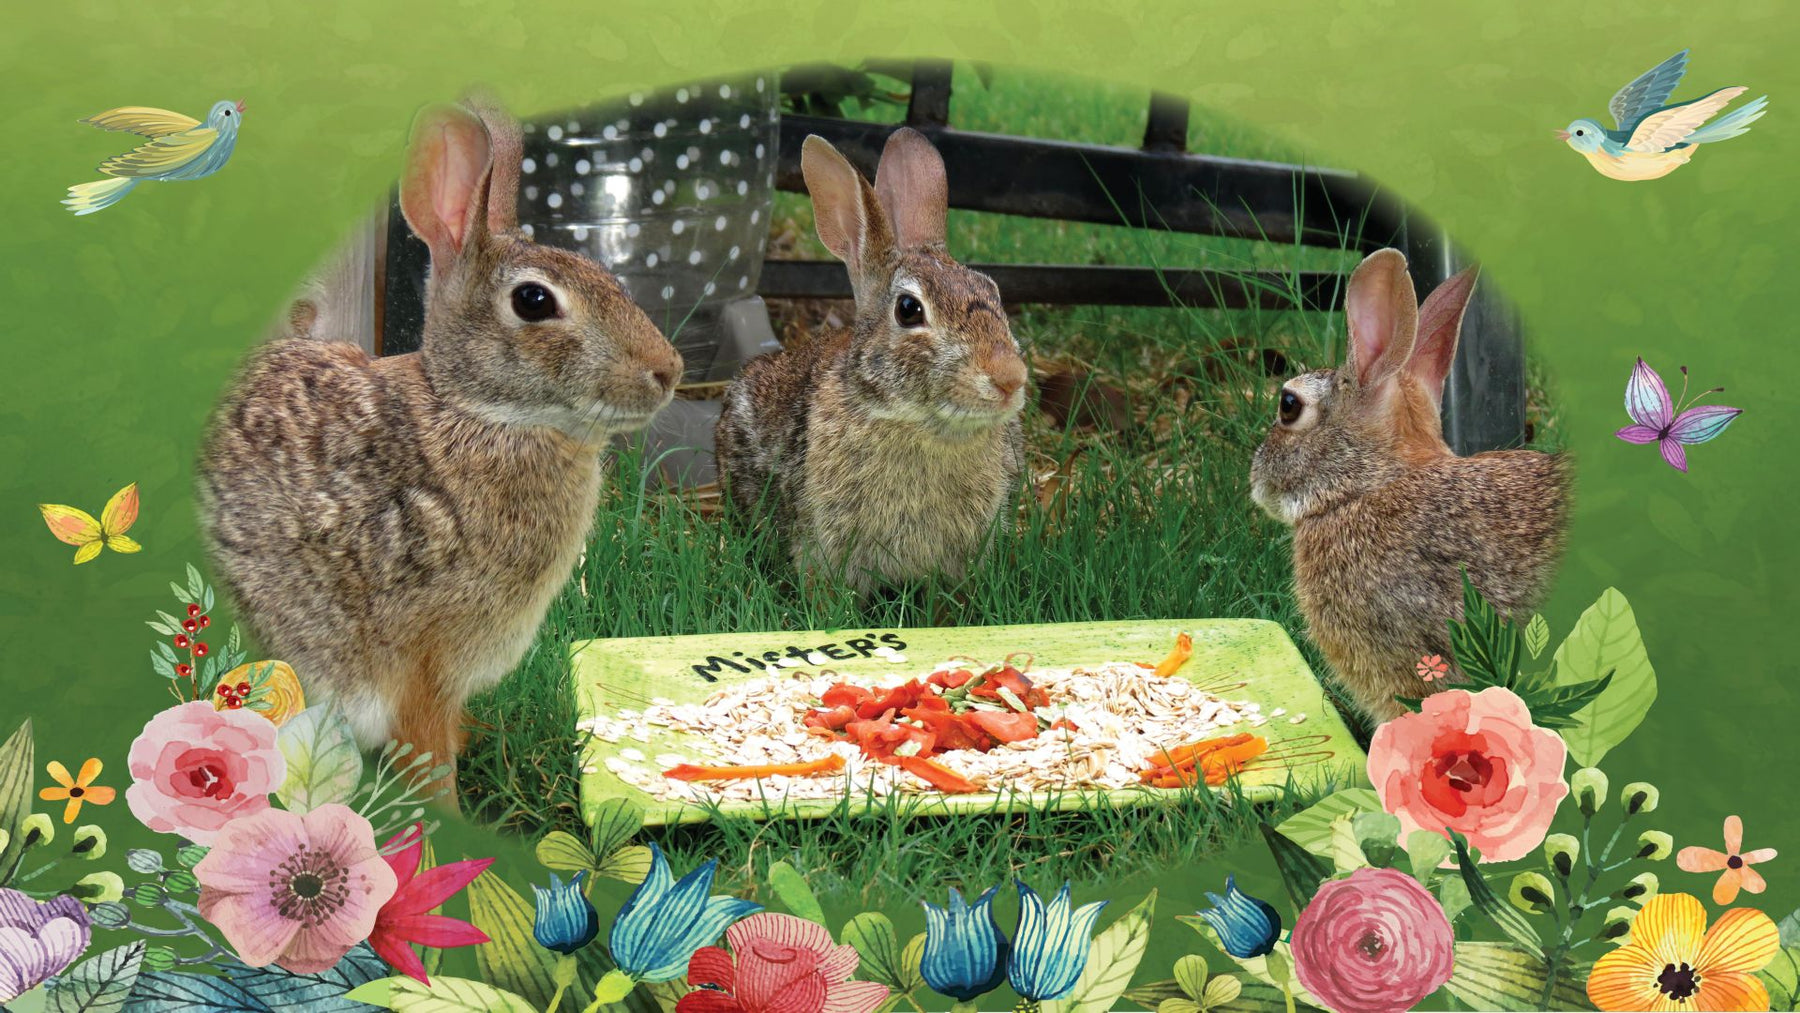 Mister's Garden - Bunny Books - Rabbit and Crazy Cat Gifts - Wild Texas Buns - Live in the Moment - JellyBean Publishing